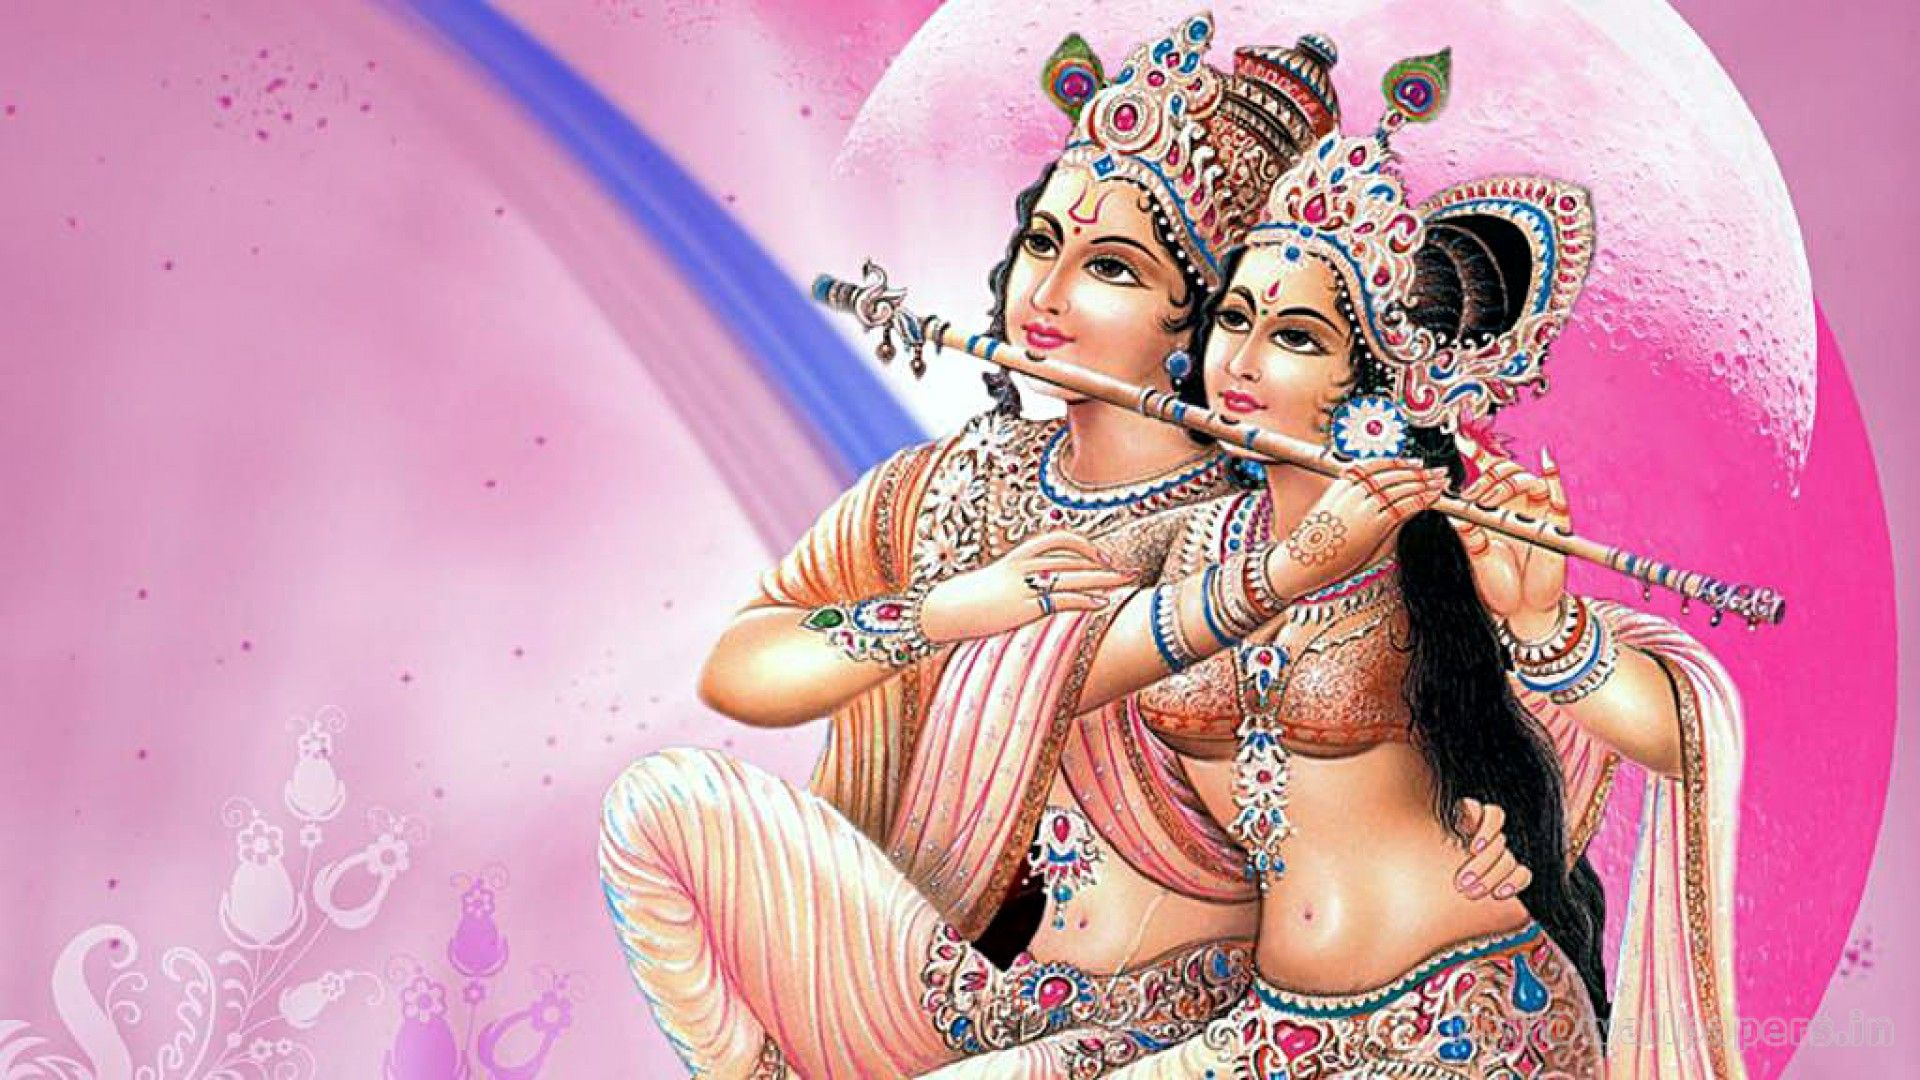 Lord Krishna and radha HD wallpaper for download